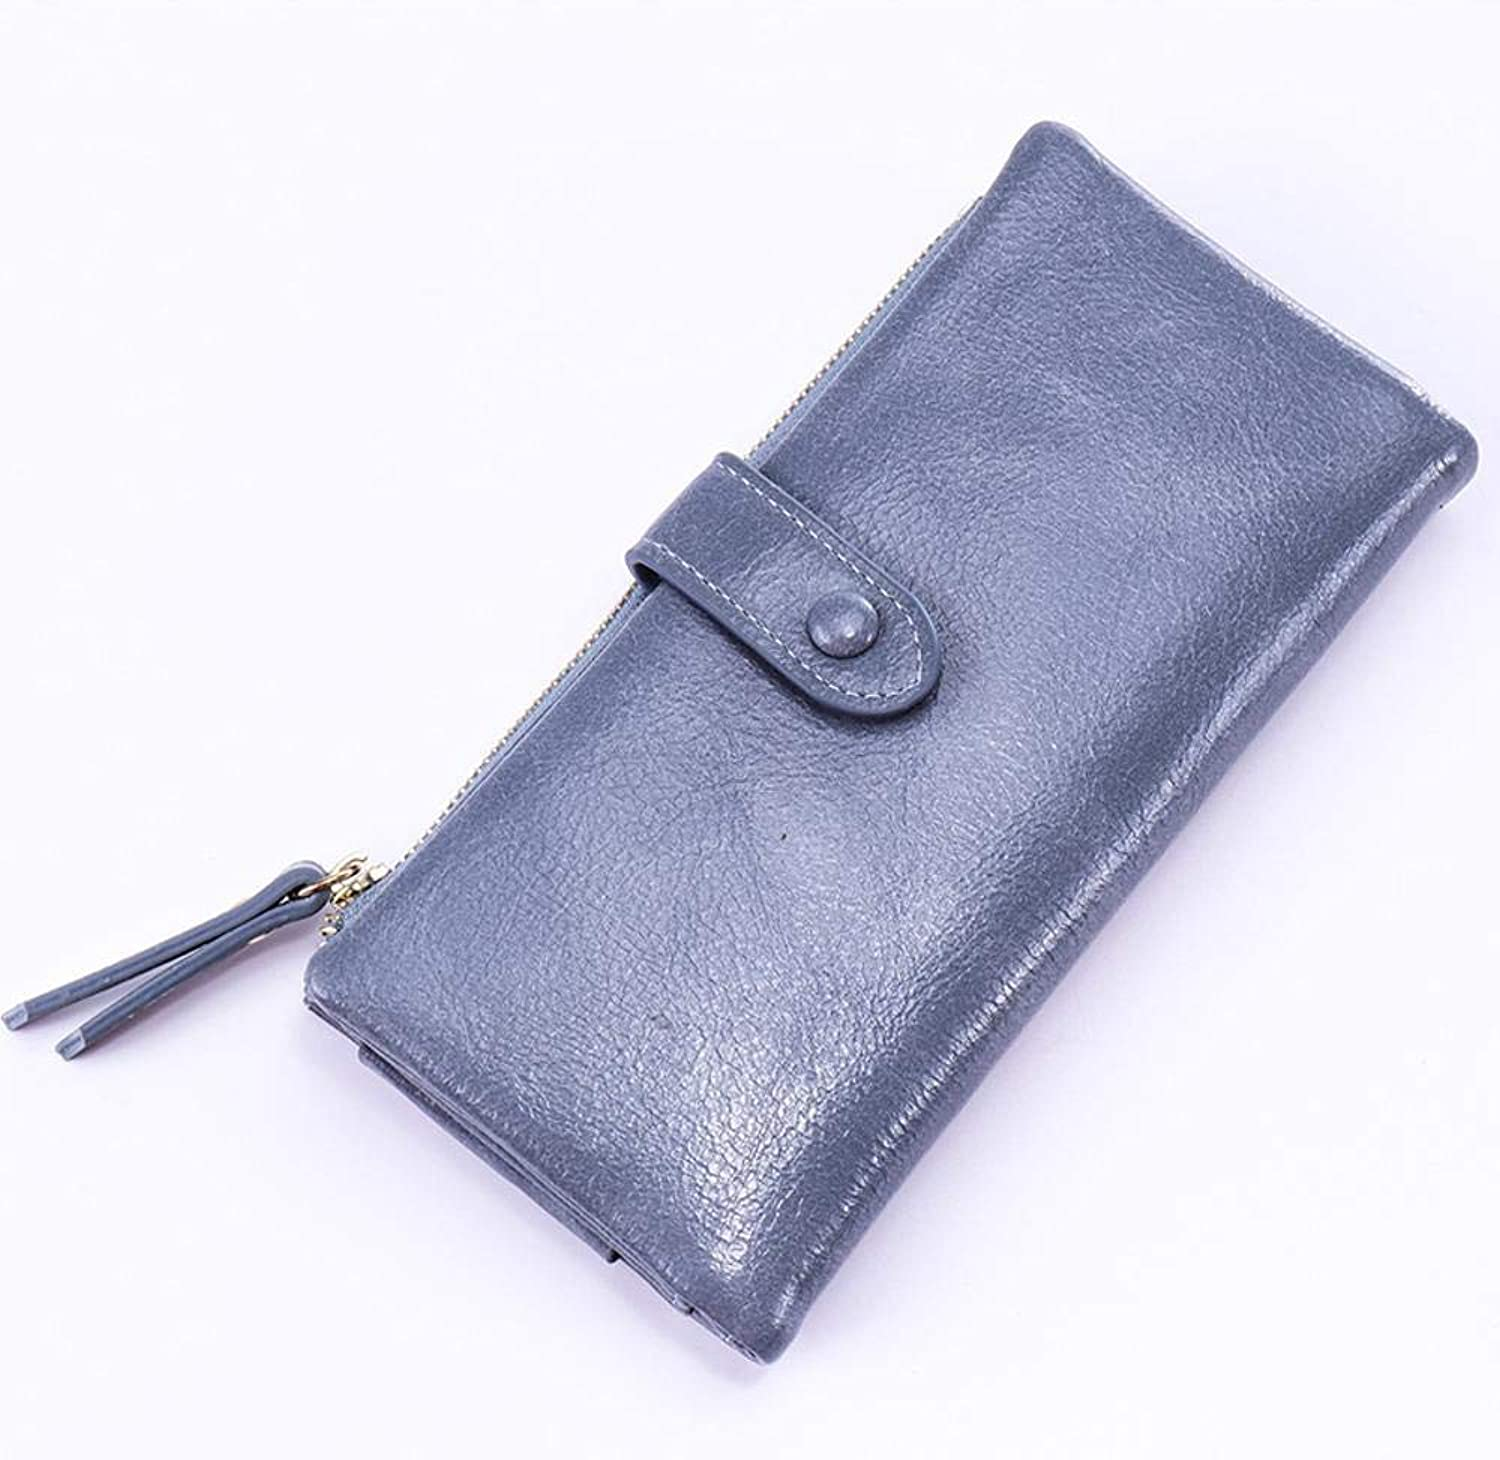 Girls Purse Women's Wallet,Ladies Wallet Student More Than 30 Percent Card Bit Large Hand Bag Multifunctional Mobile Phone Bag PU Leather (color   C)